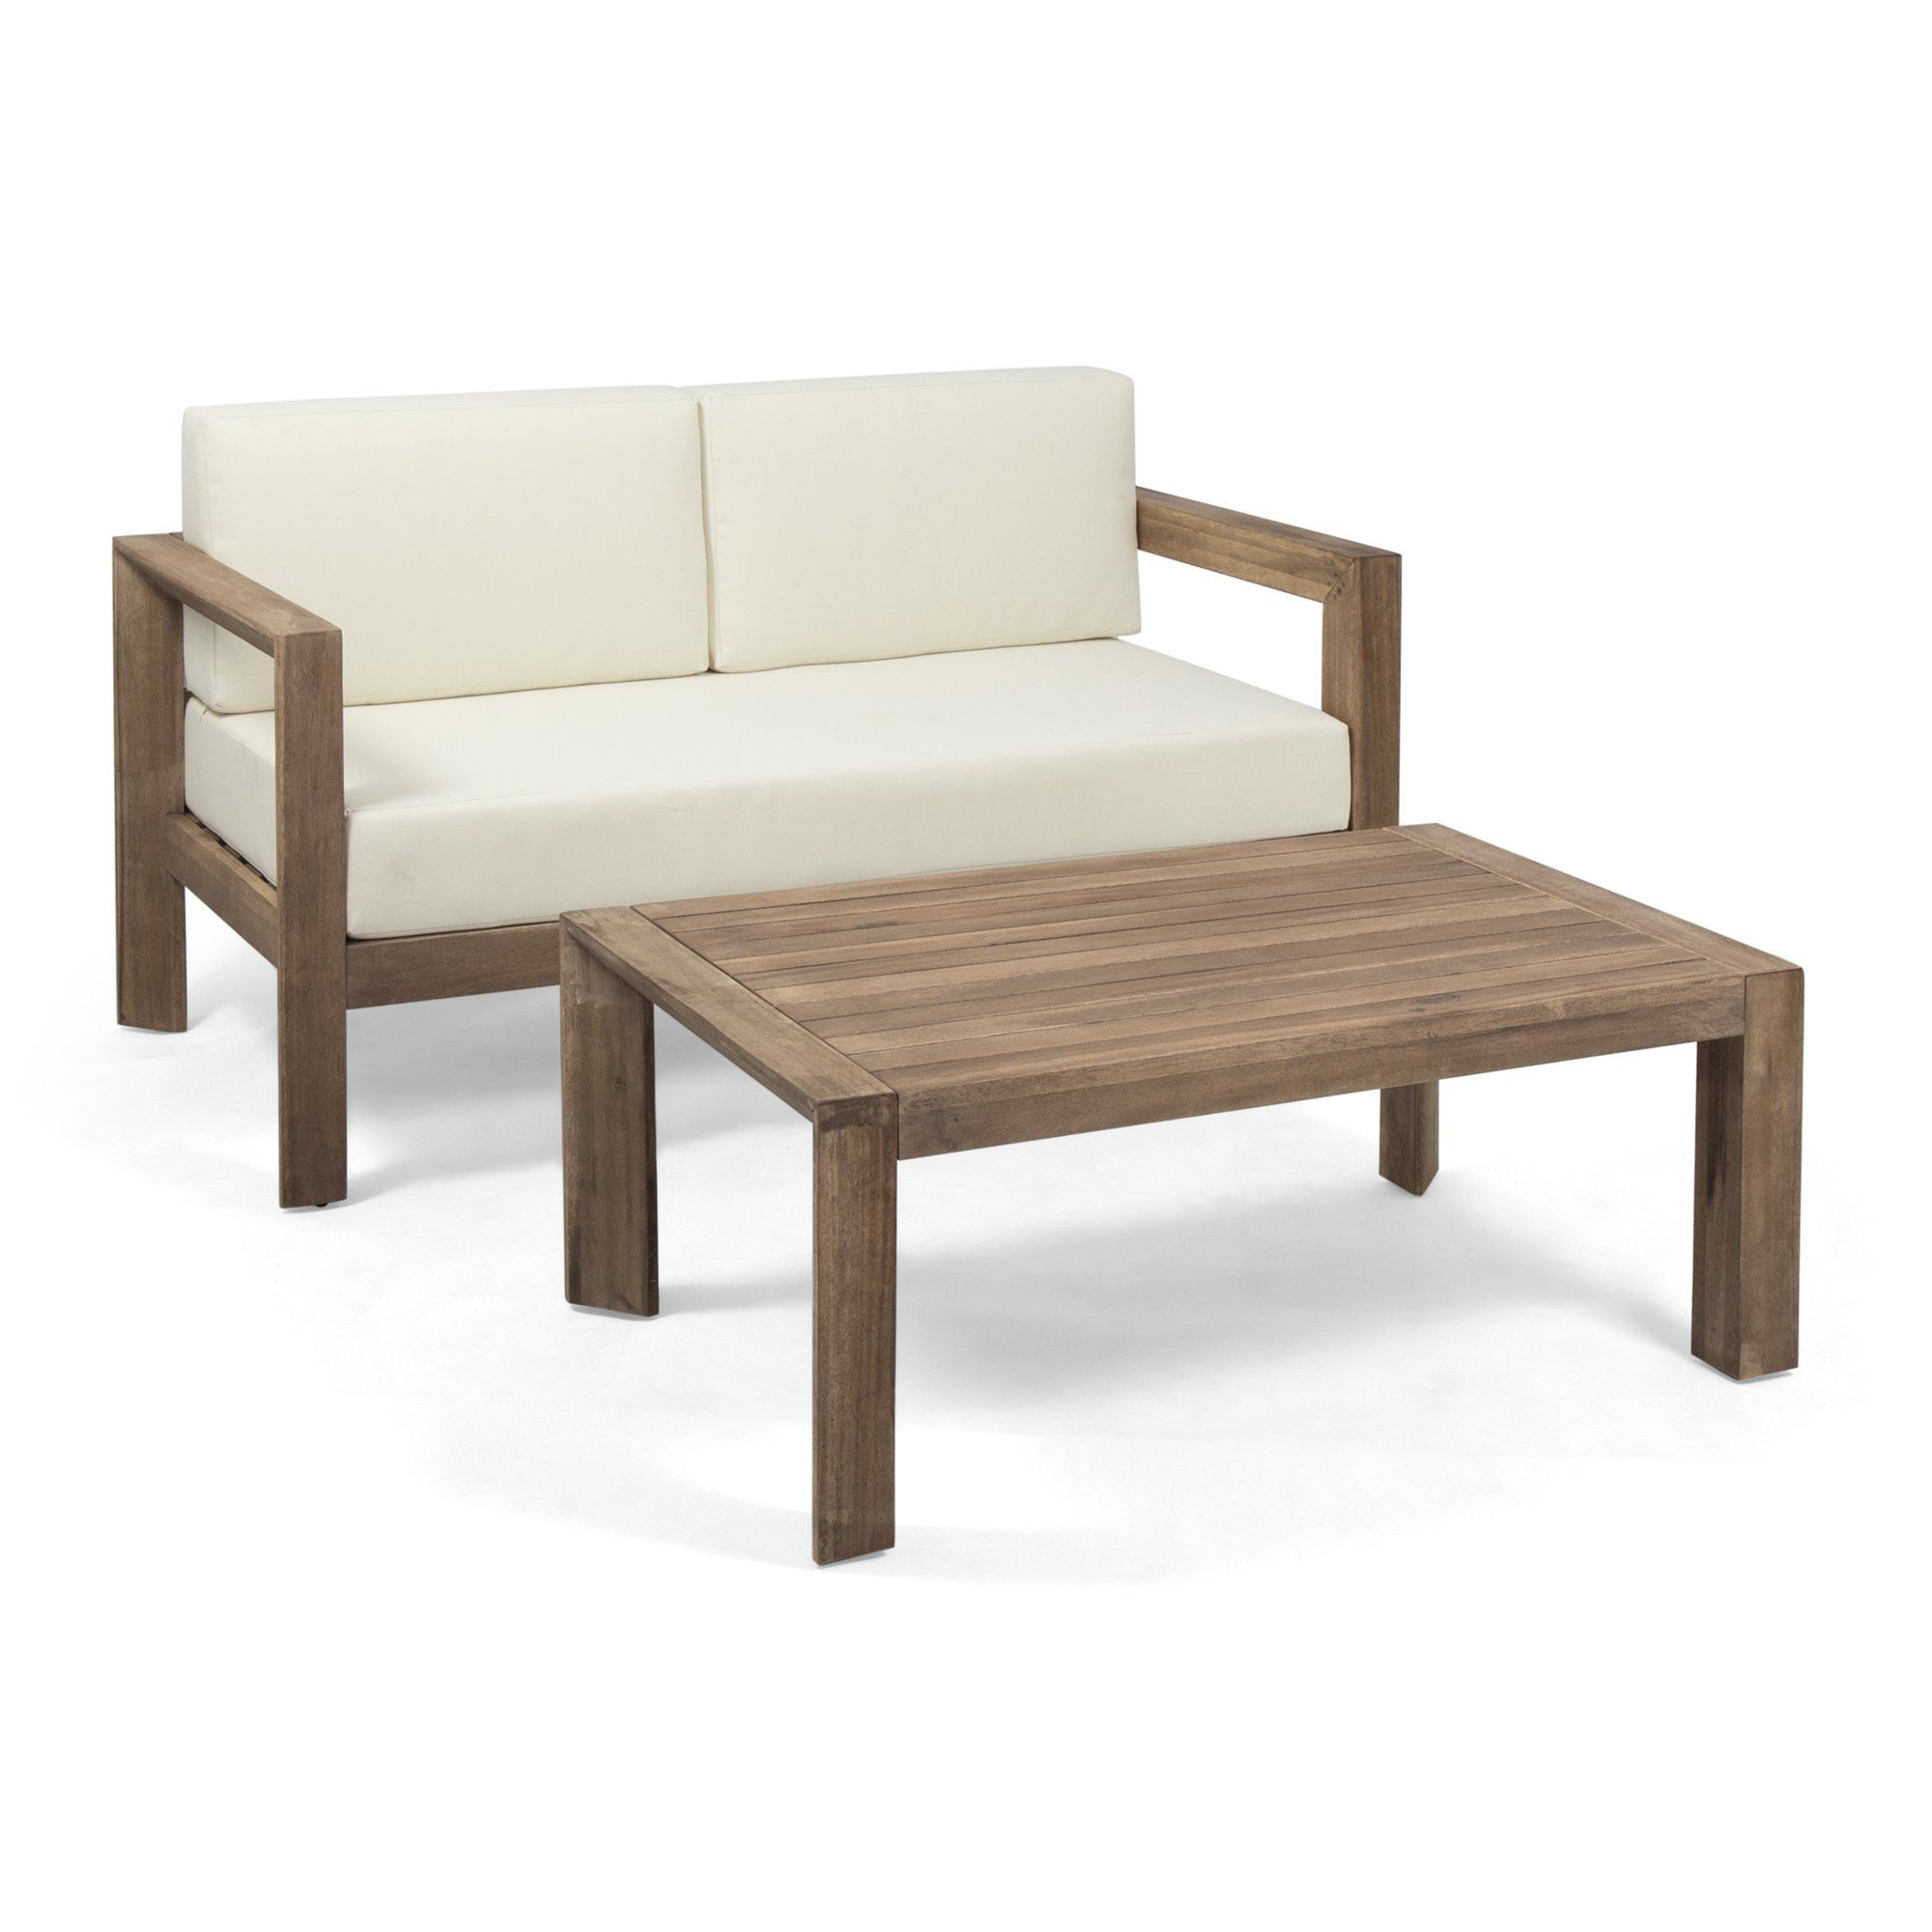 Alfonso Outdoor 2 Seater Wooden Loveseat and Coffee Table